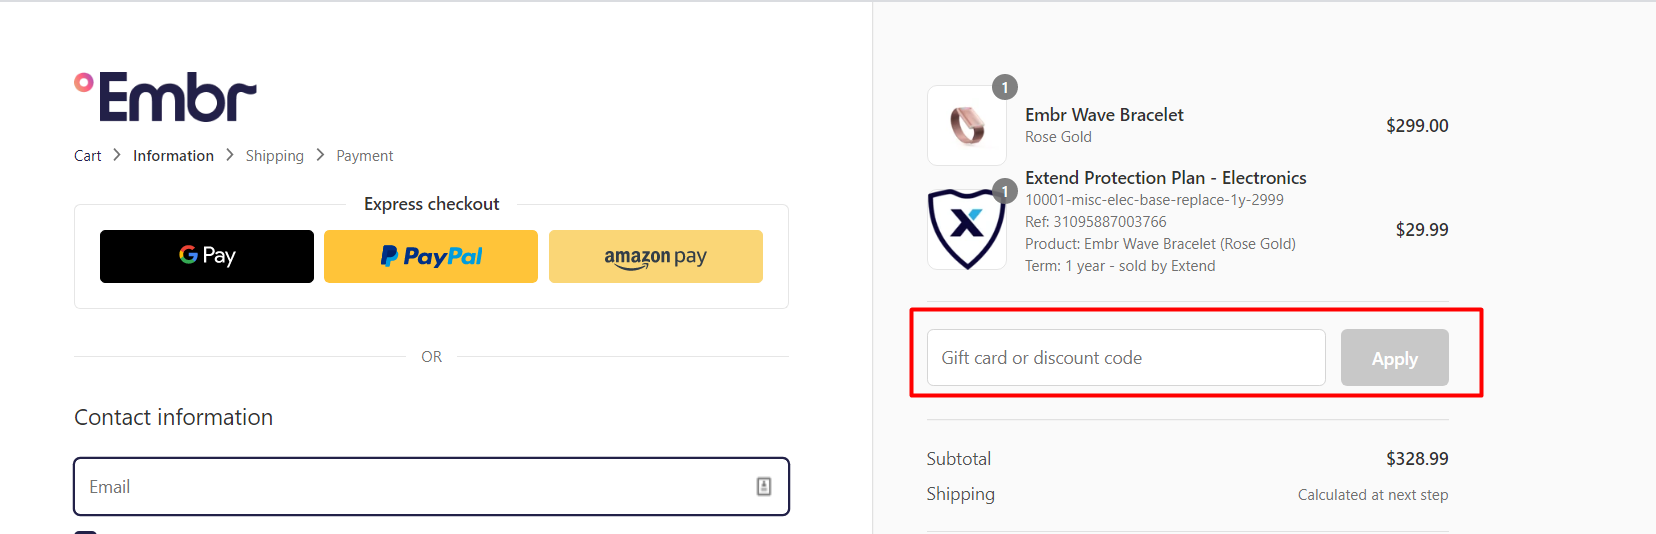 How do I use my Embr discount code